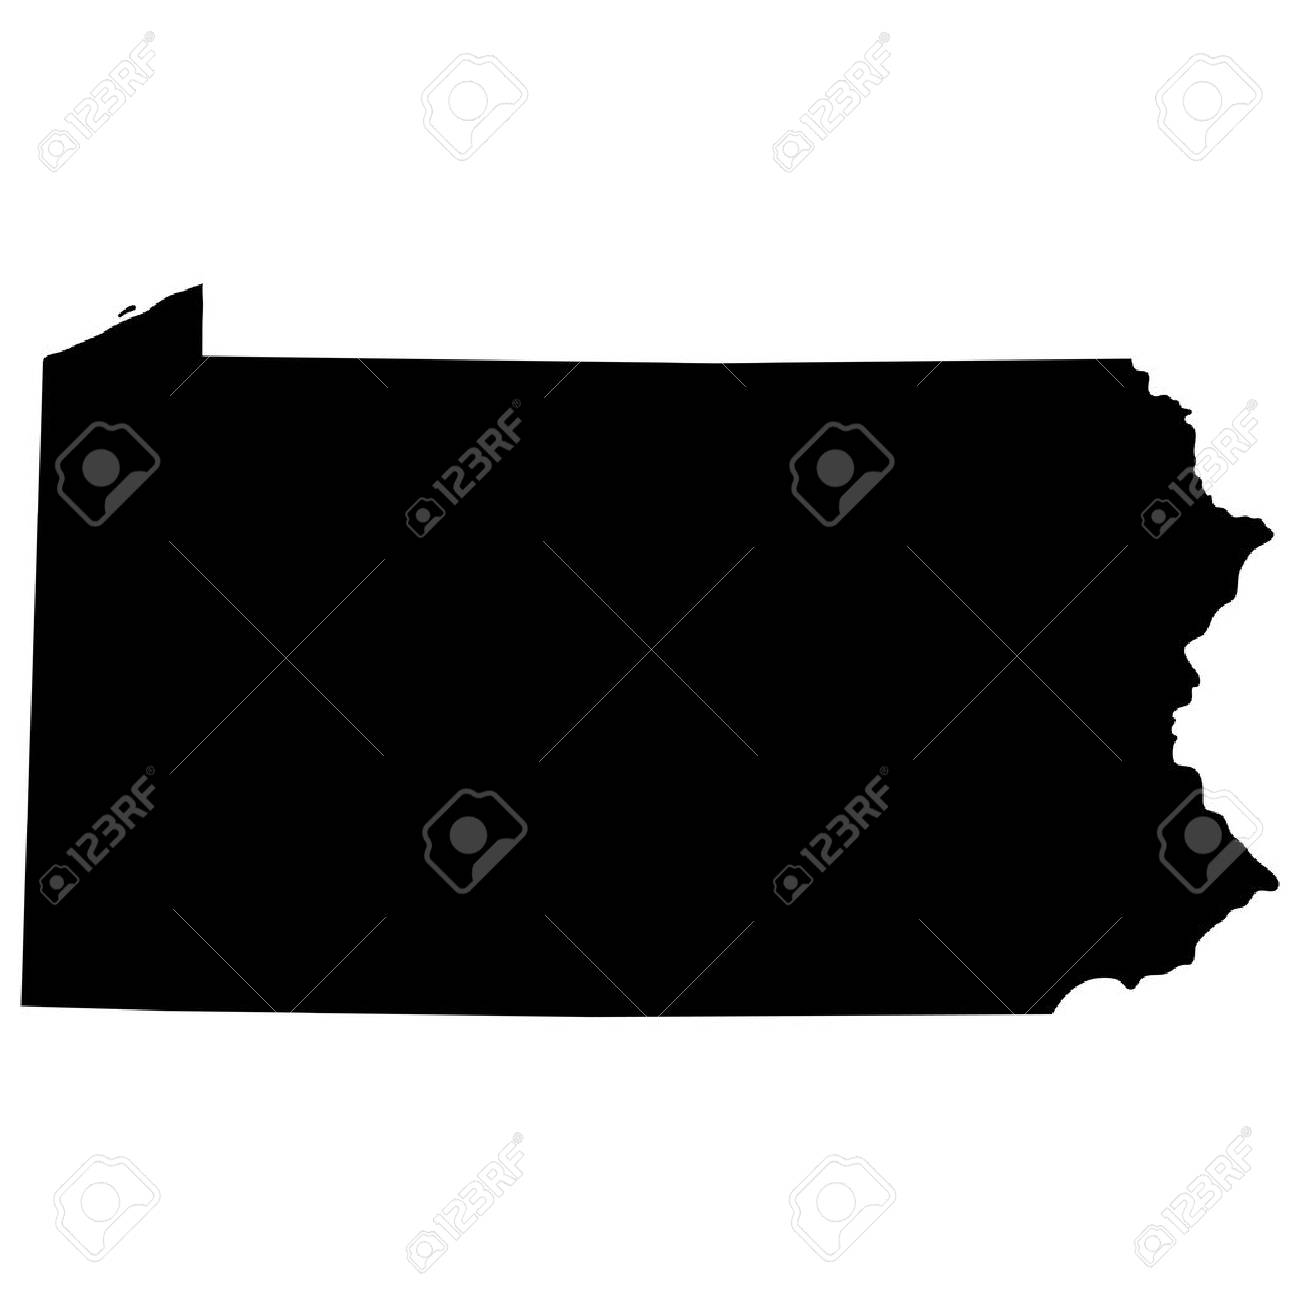 map of the U.S. state of Pennsylvania - 39242778